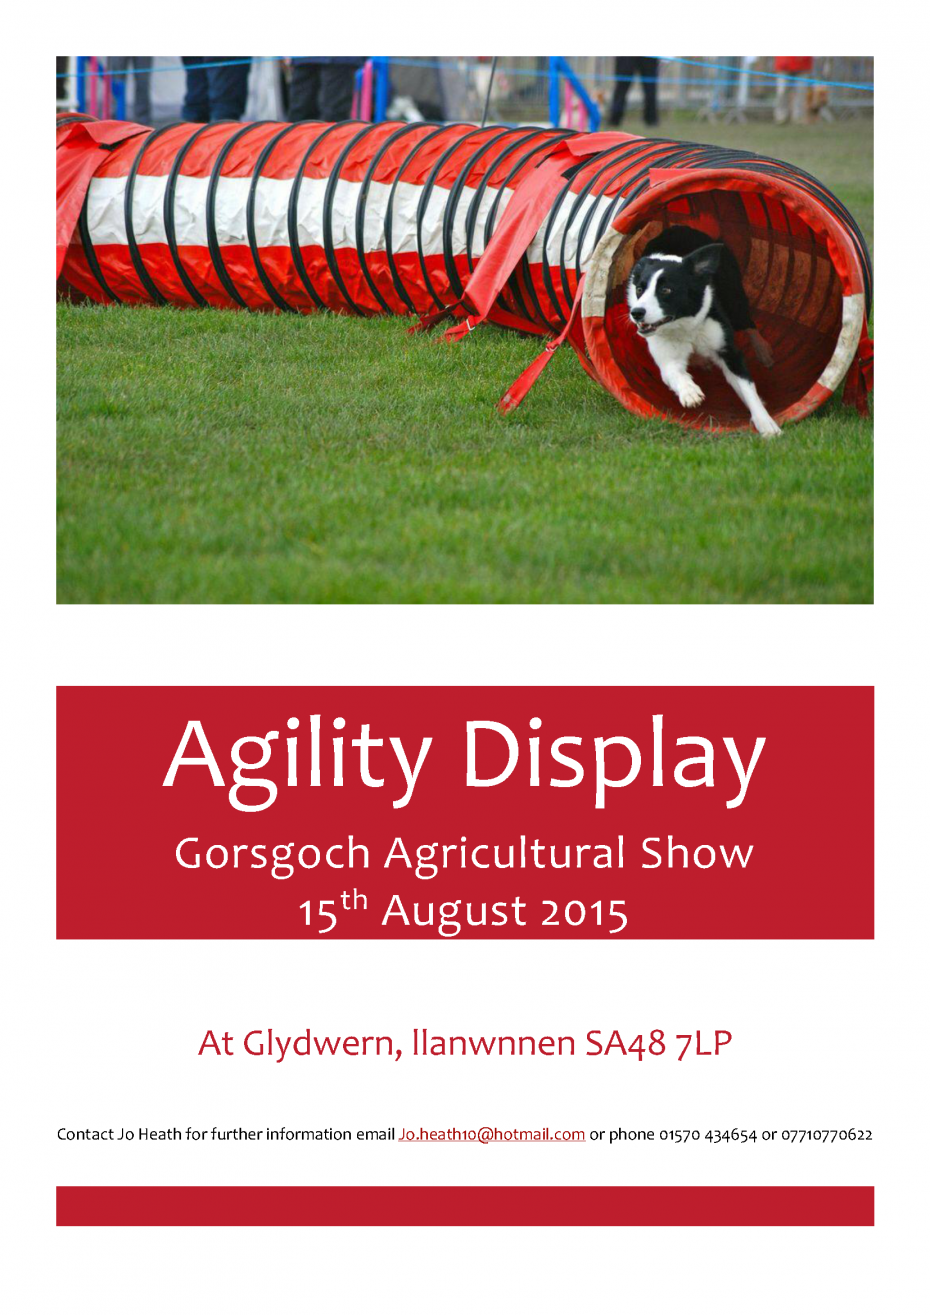 Gorsgoch Agility Display poster